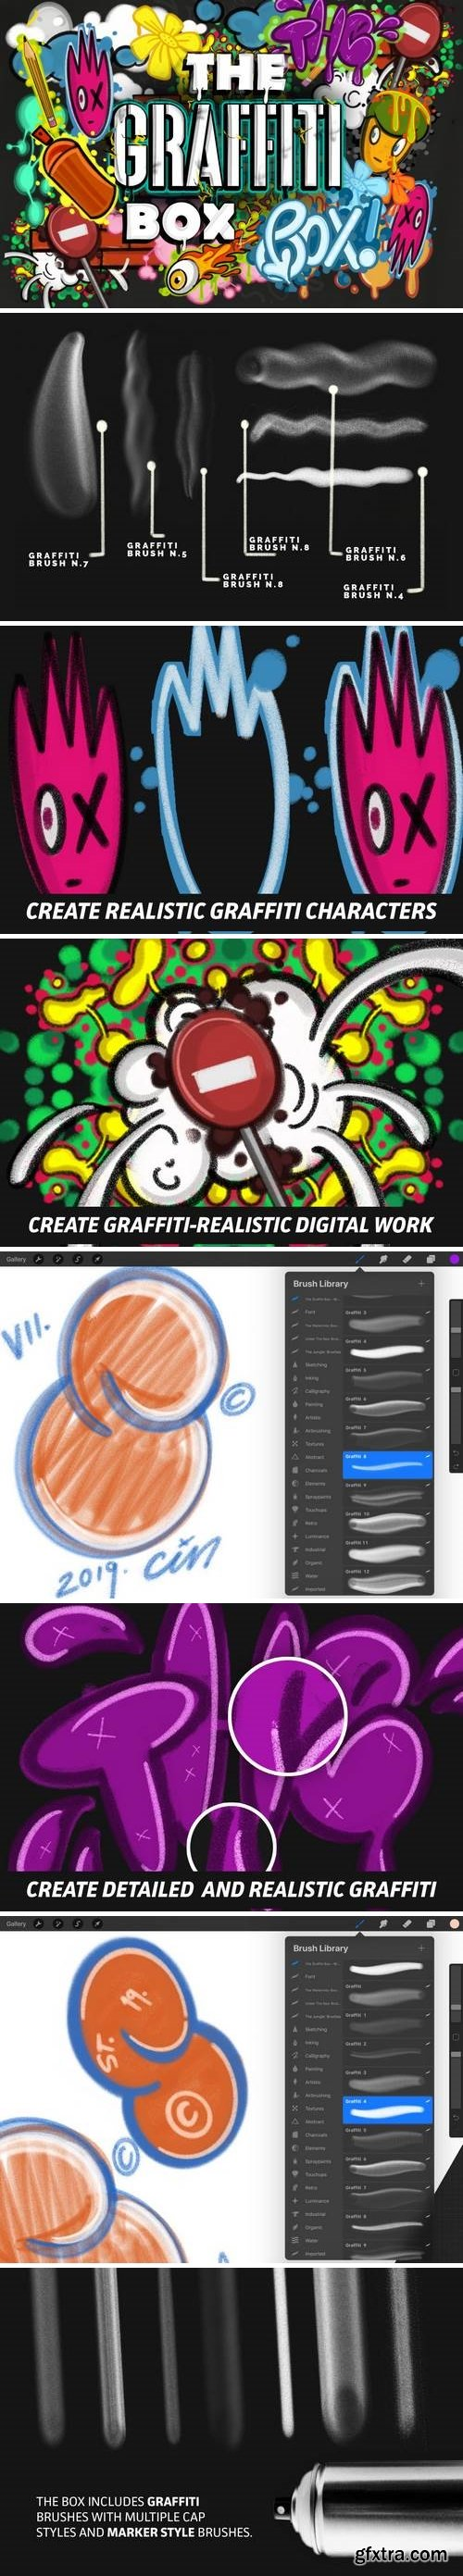 The Graffiti Box: Procreate Brushes